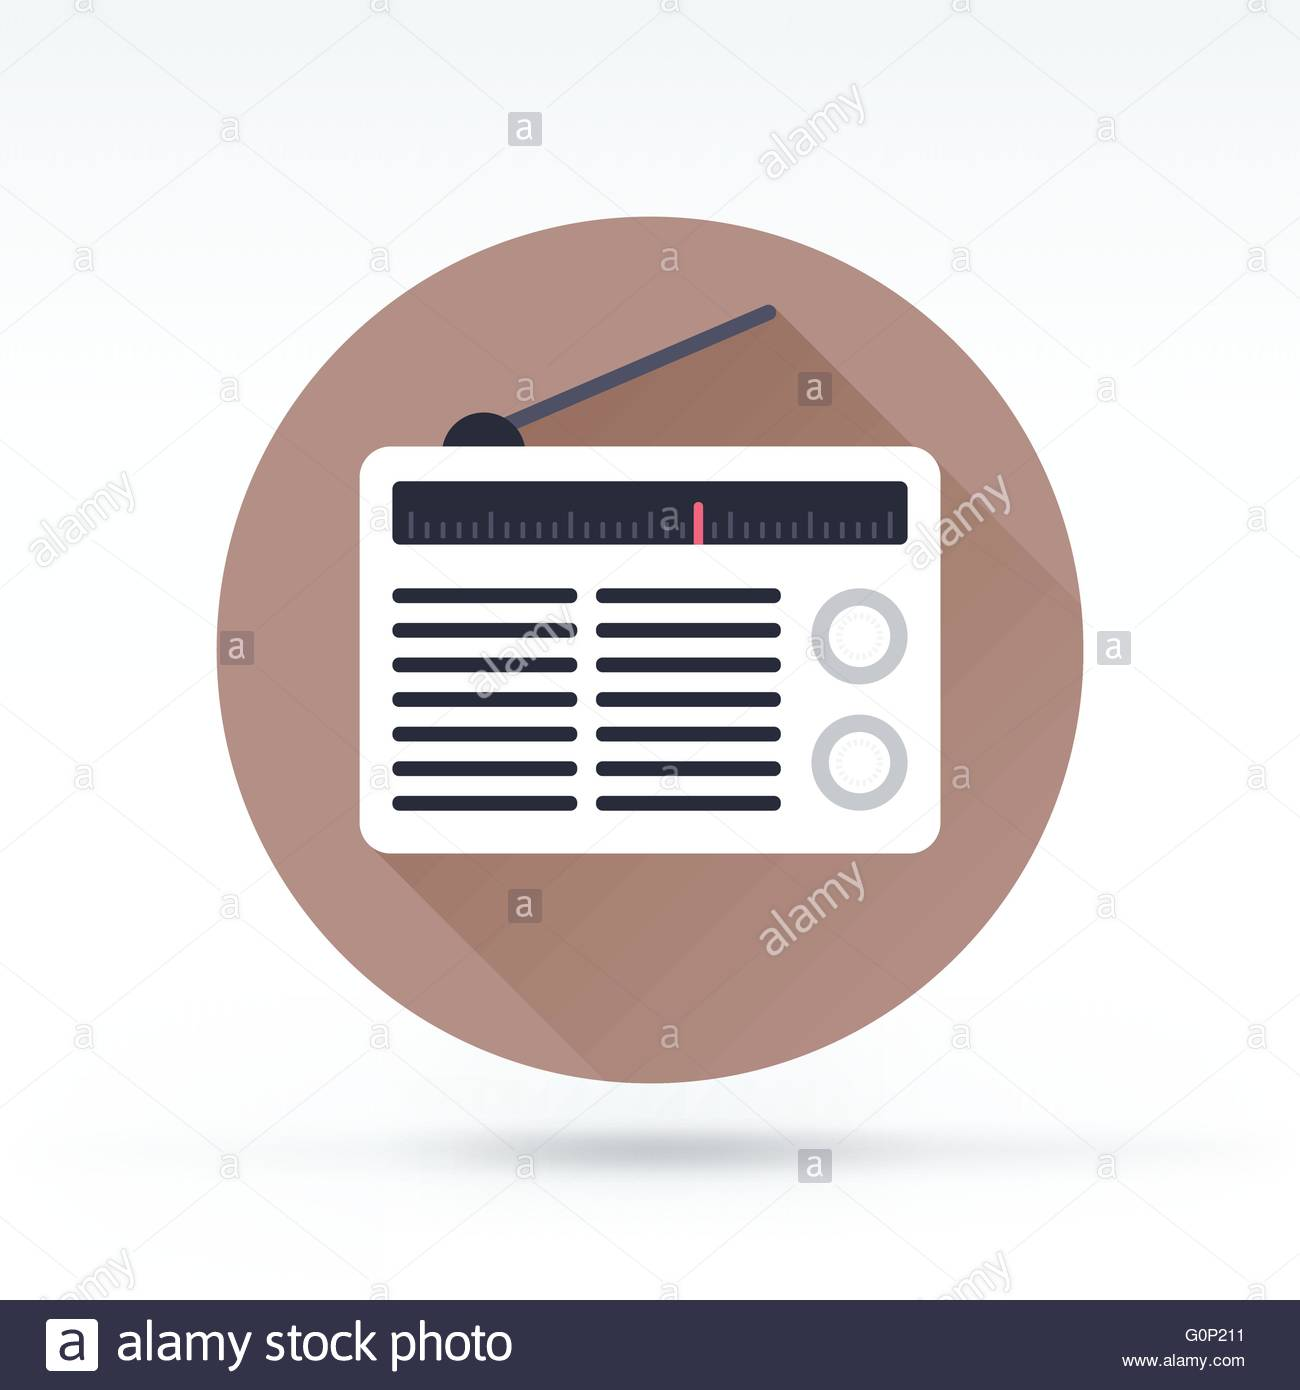 Flat style with long shadows, radio vector icon illustration. - Stock Image